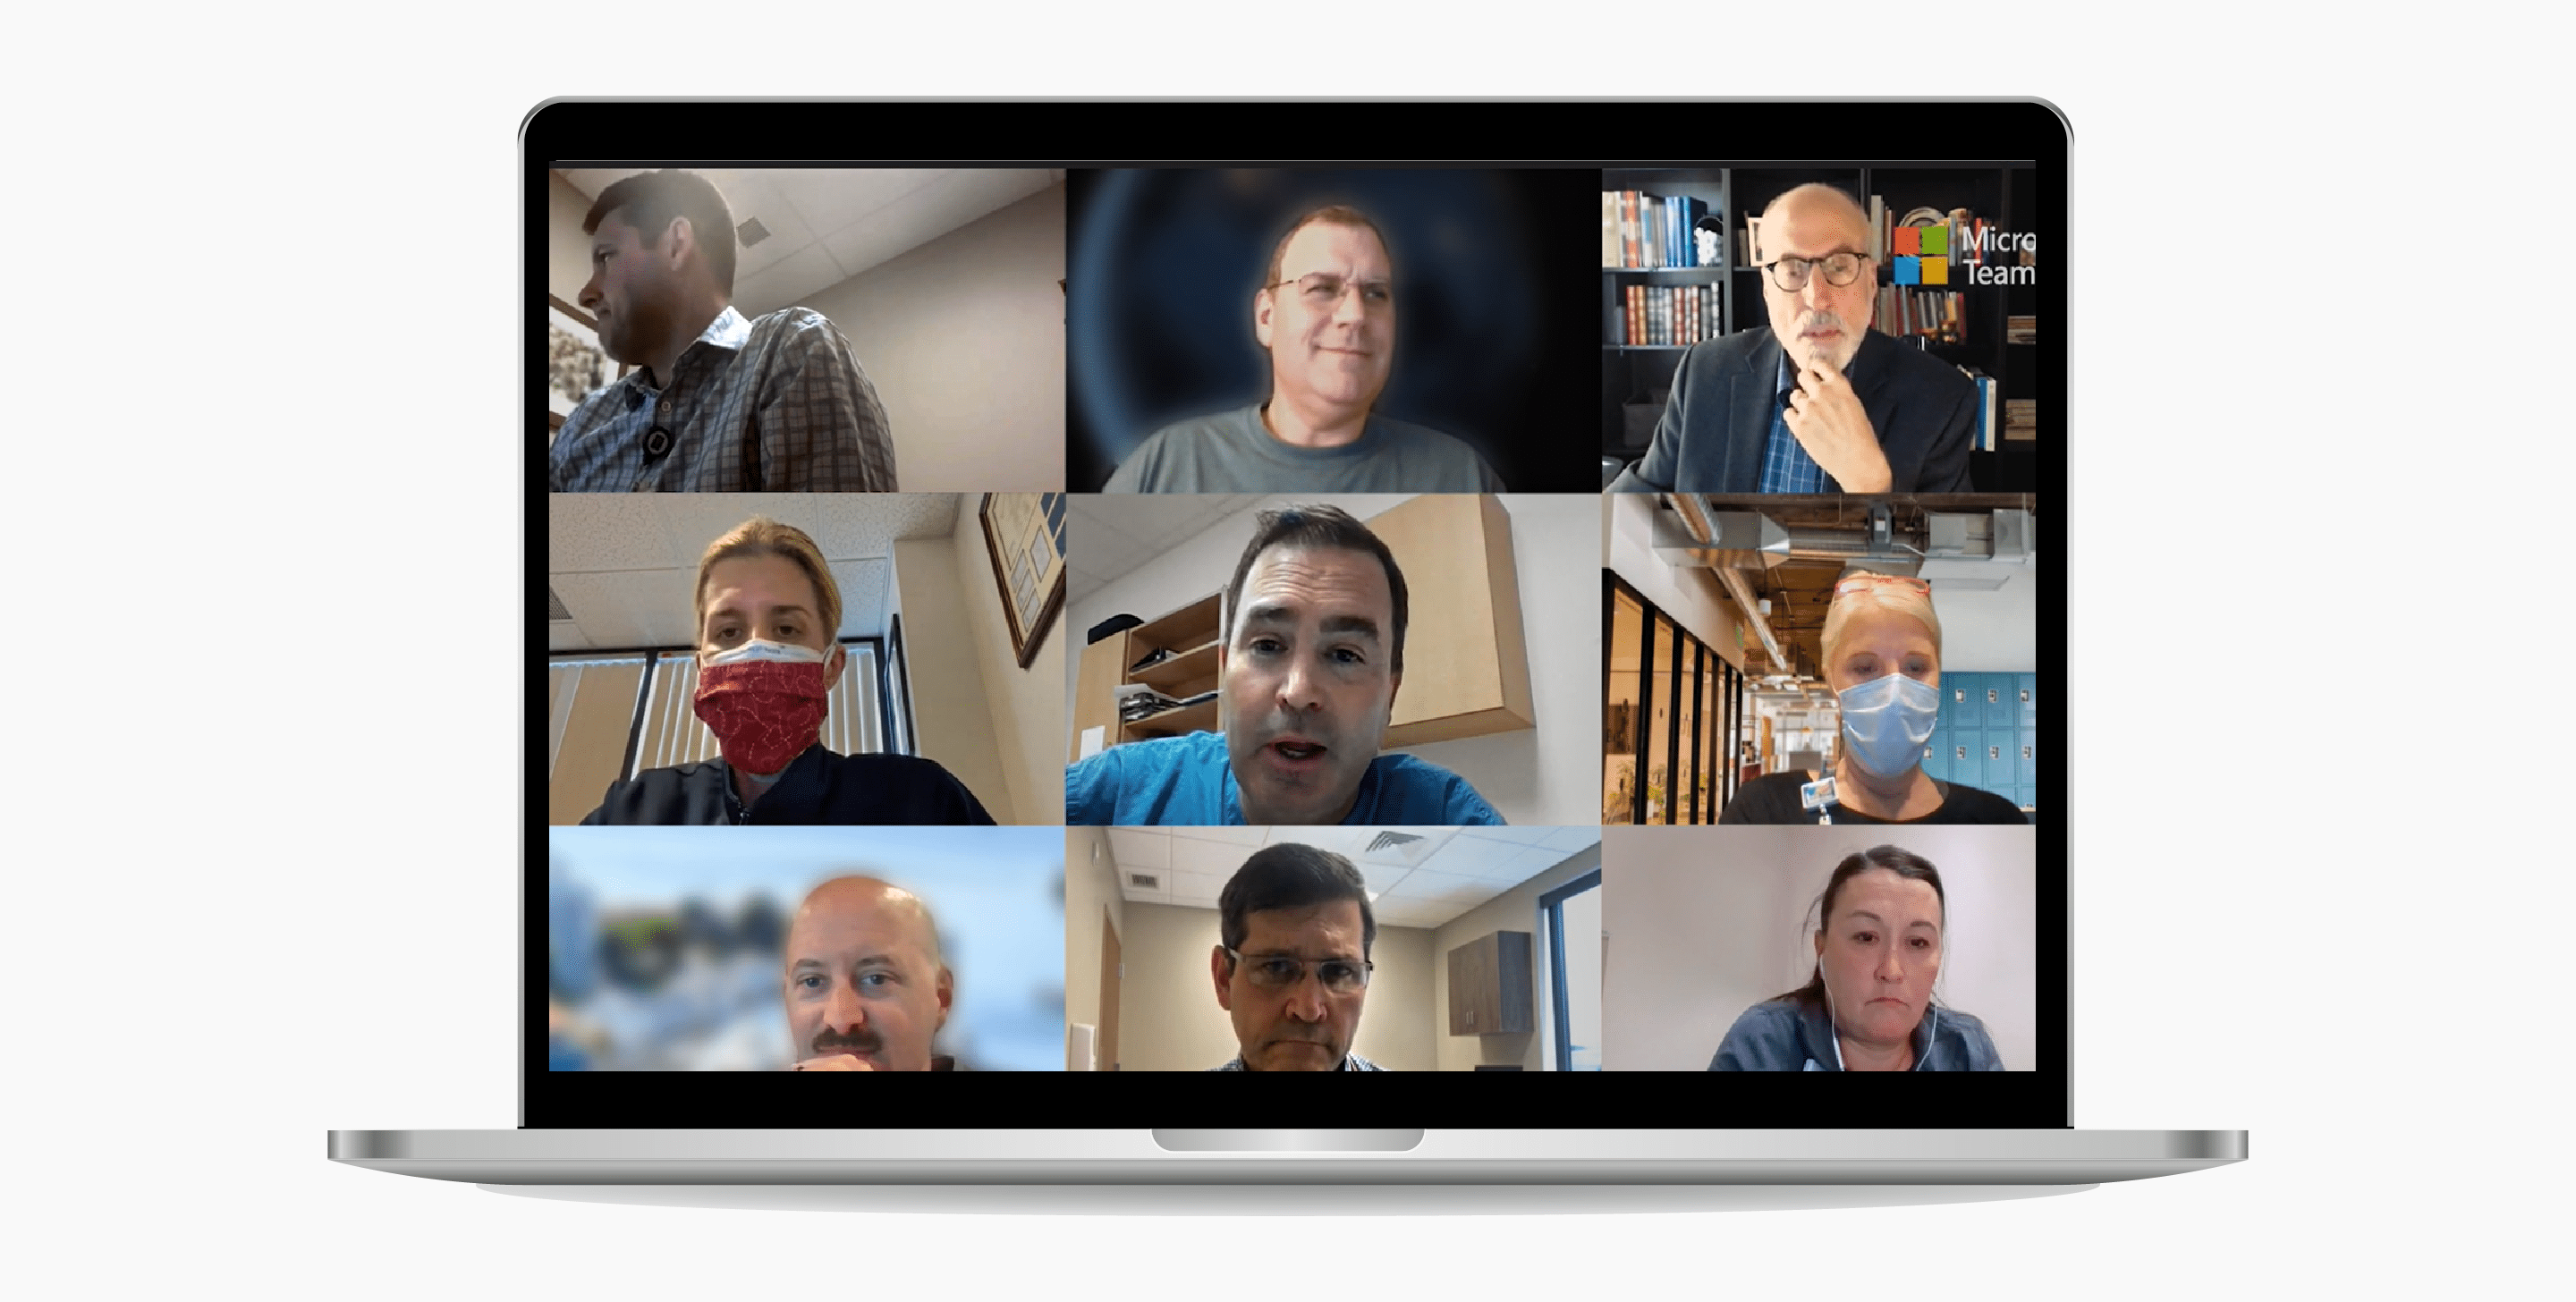 Video Conferencing App - Microsoft Teams.